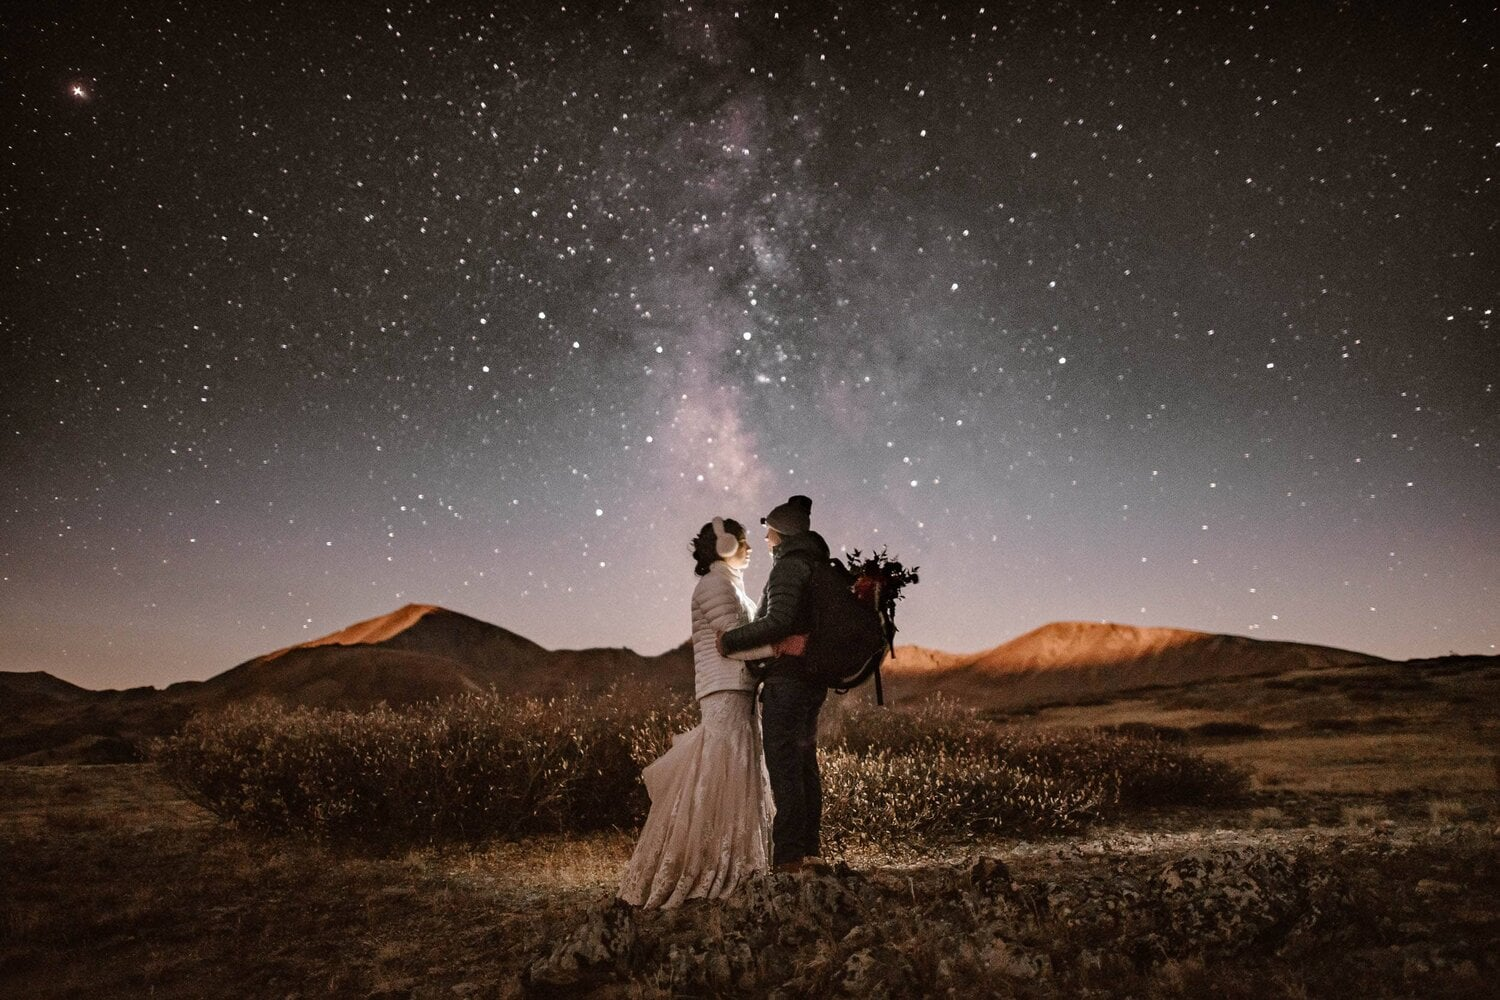 Bride and groom embrace while watching the starry night sky.